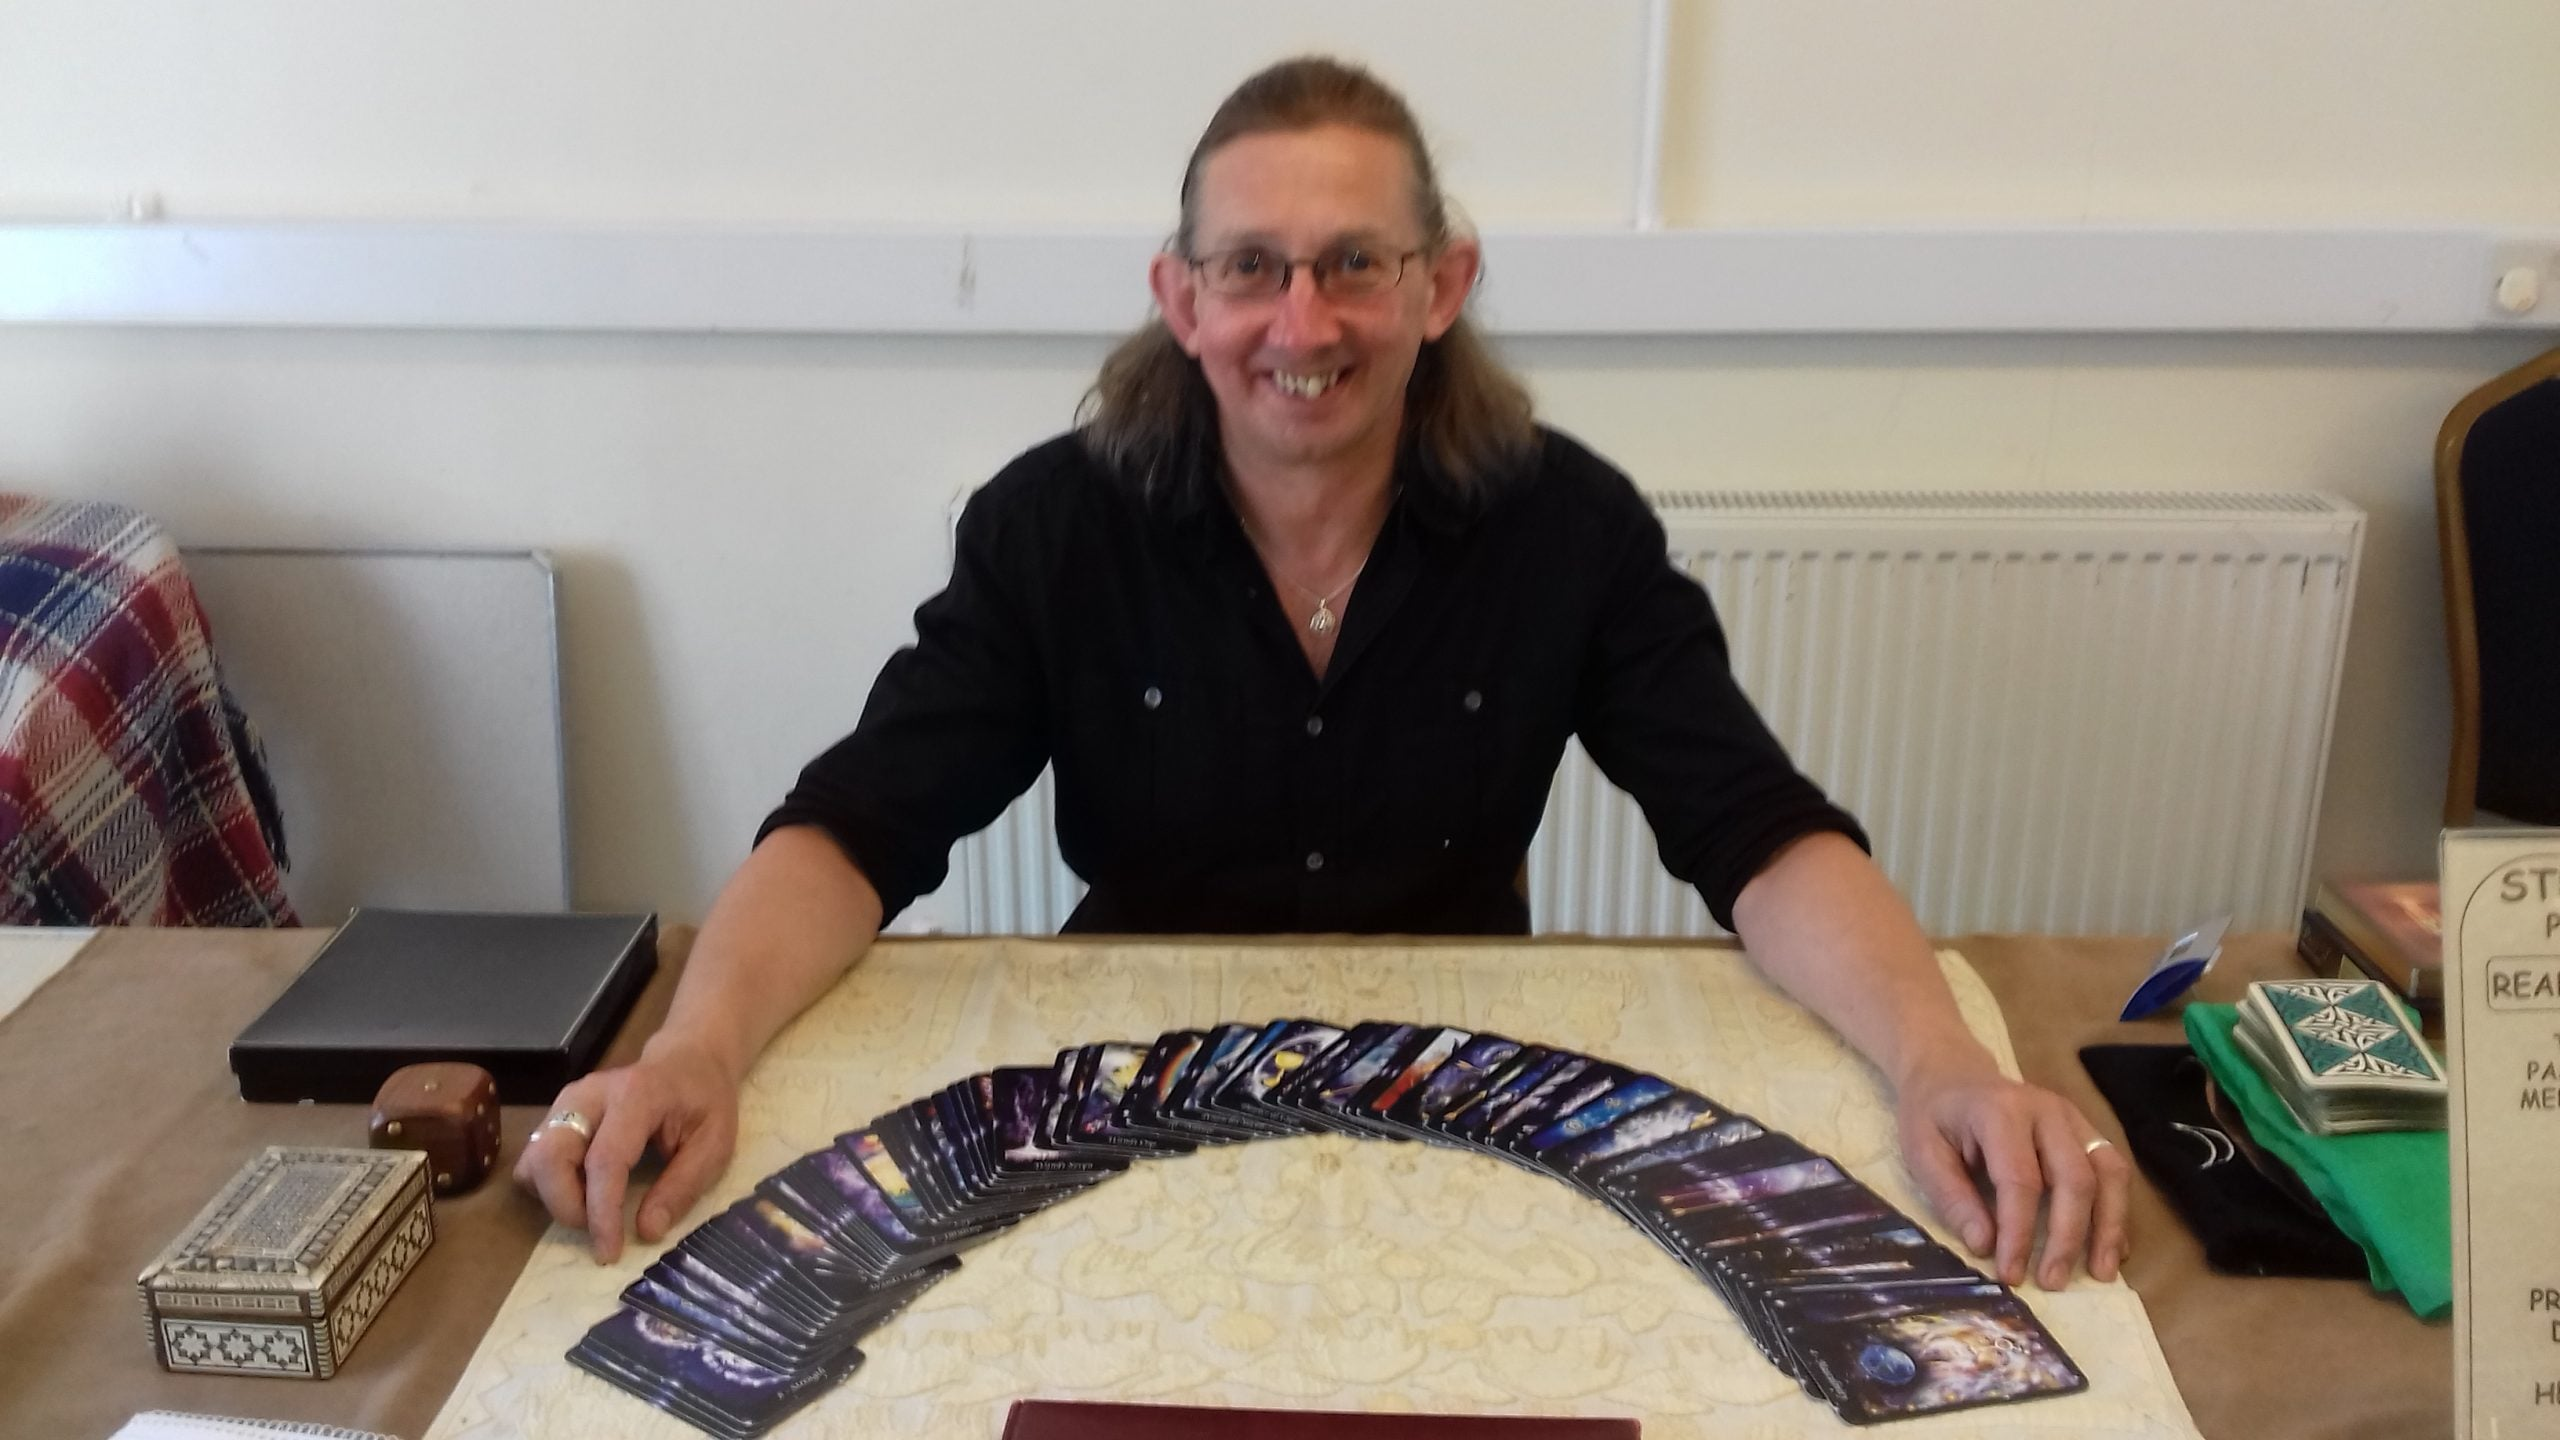 Photograph of Steve Hounsome ready to read and teach the Tarot.